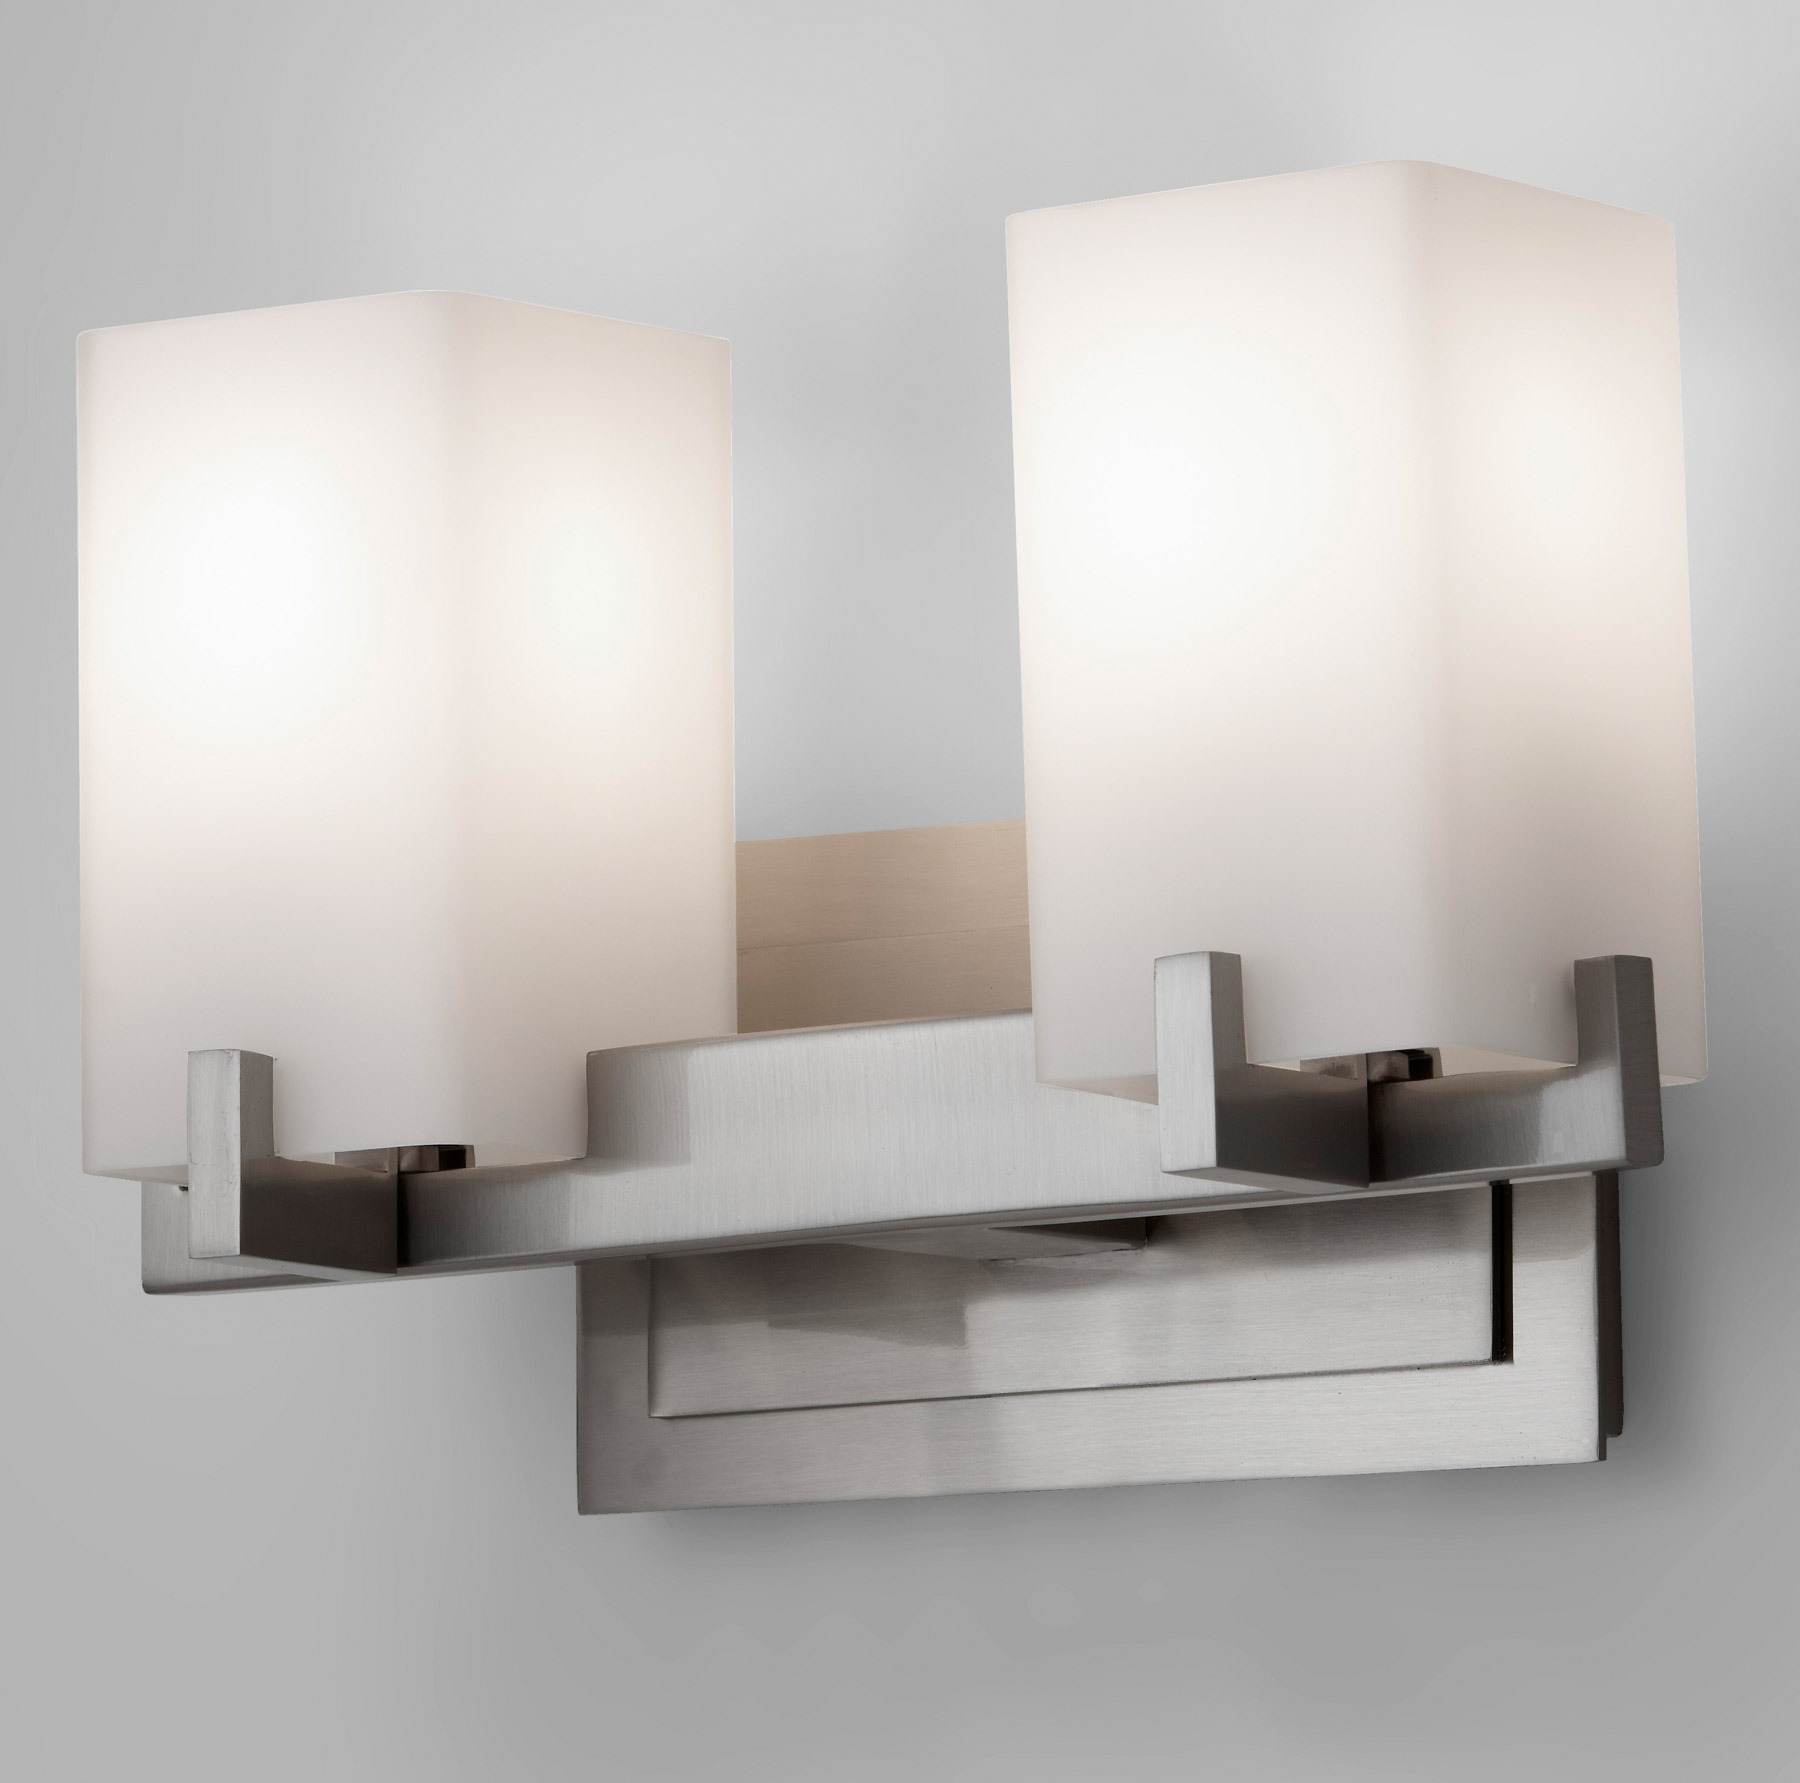 Murray Feiss Vs18402 Bs Riva Vanity Light